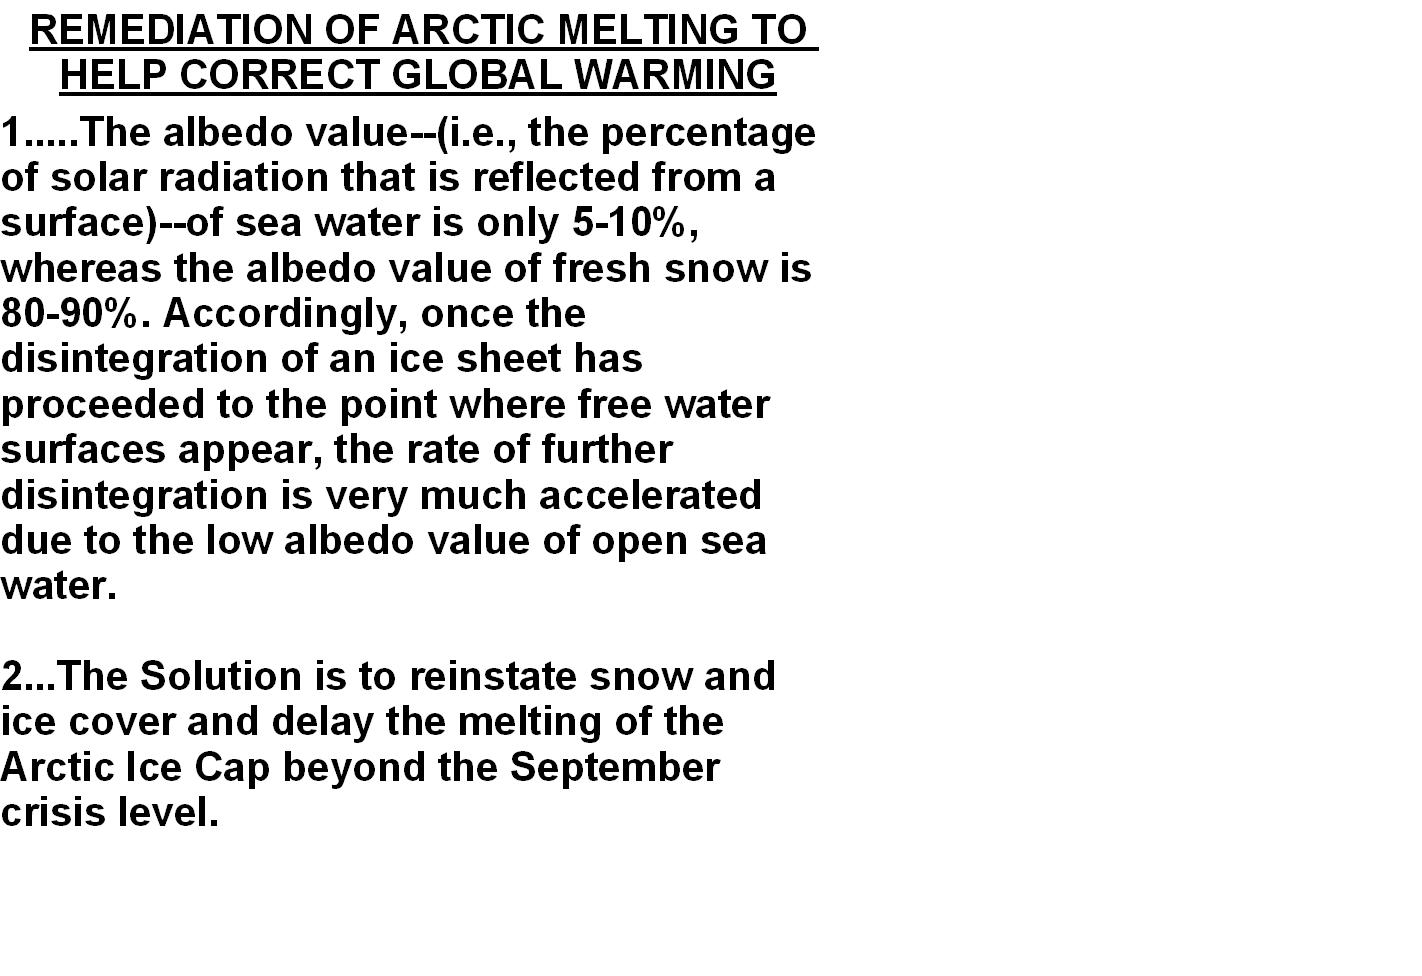 HOW TO COMBAT GLOBAL WARMING IN THE ARCTIC